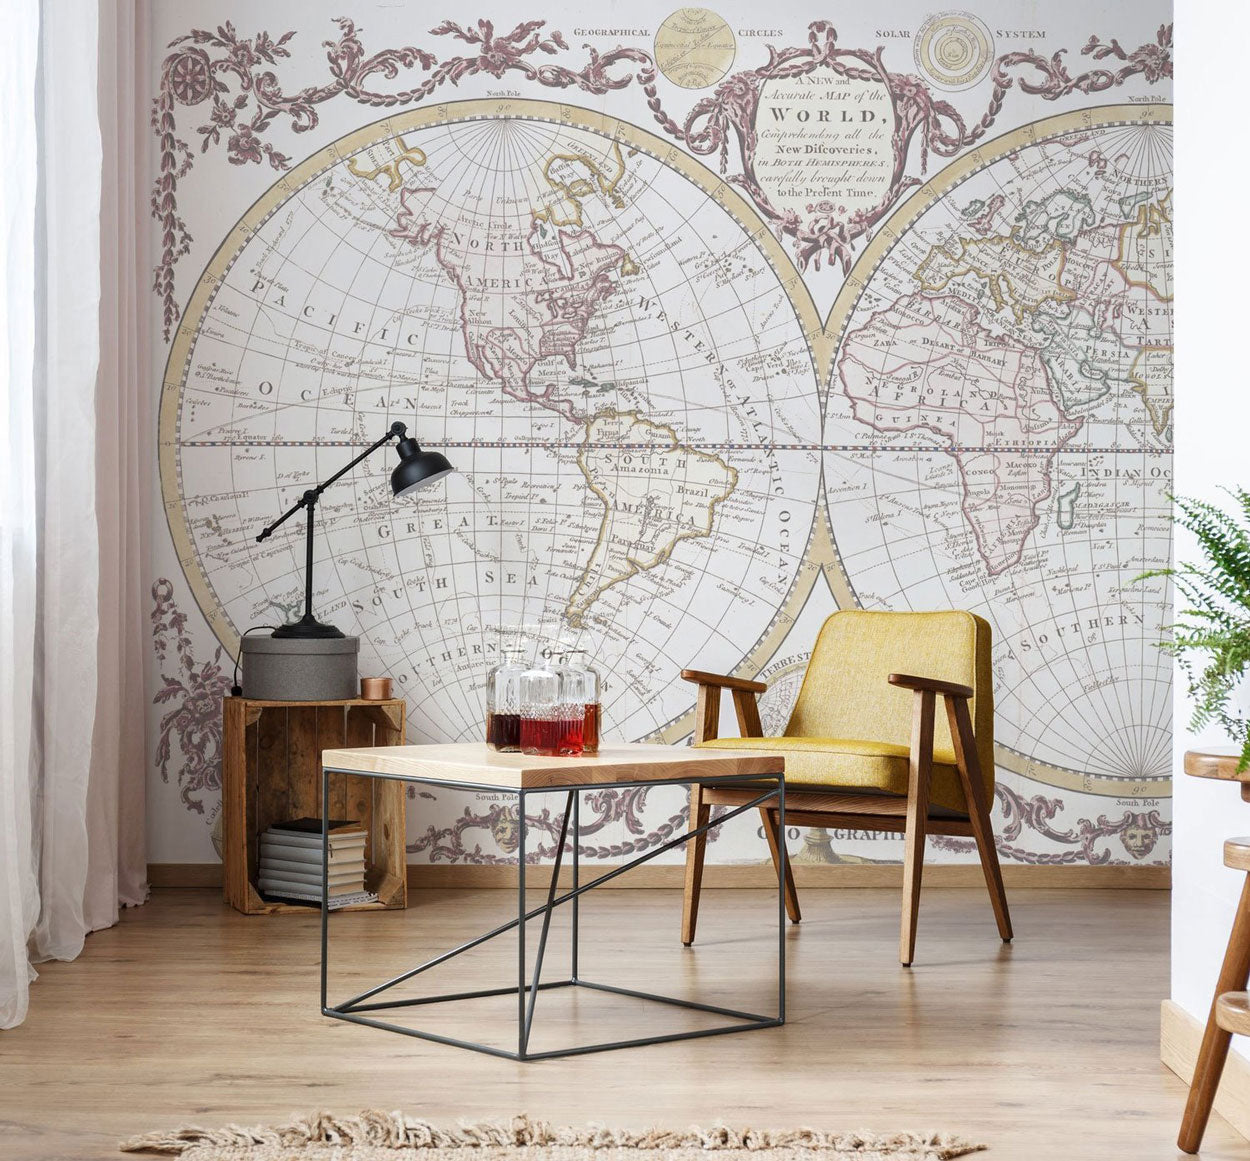 Living Room Wall Murals | Eazywallz